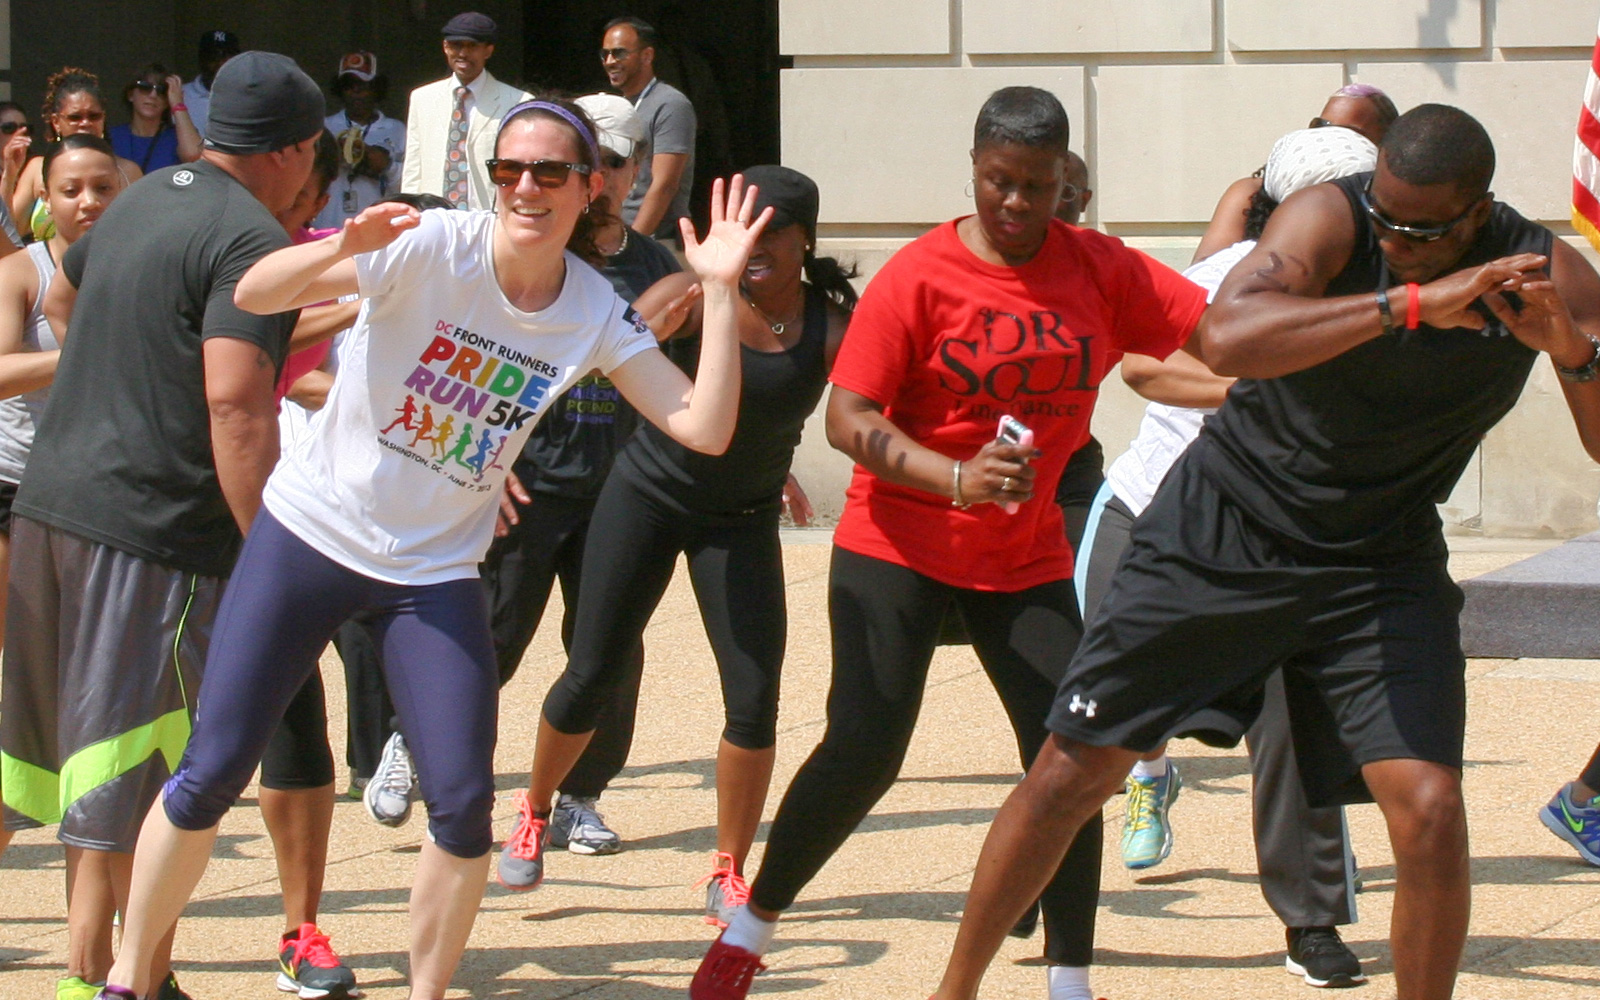 Group of EPA employees participating in outdoors synchonized aerobic dance exercises in an urban environment on a sunny day